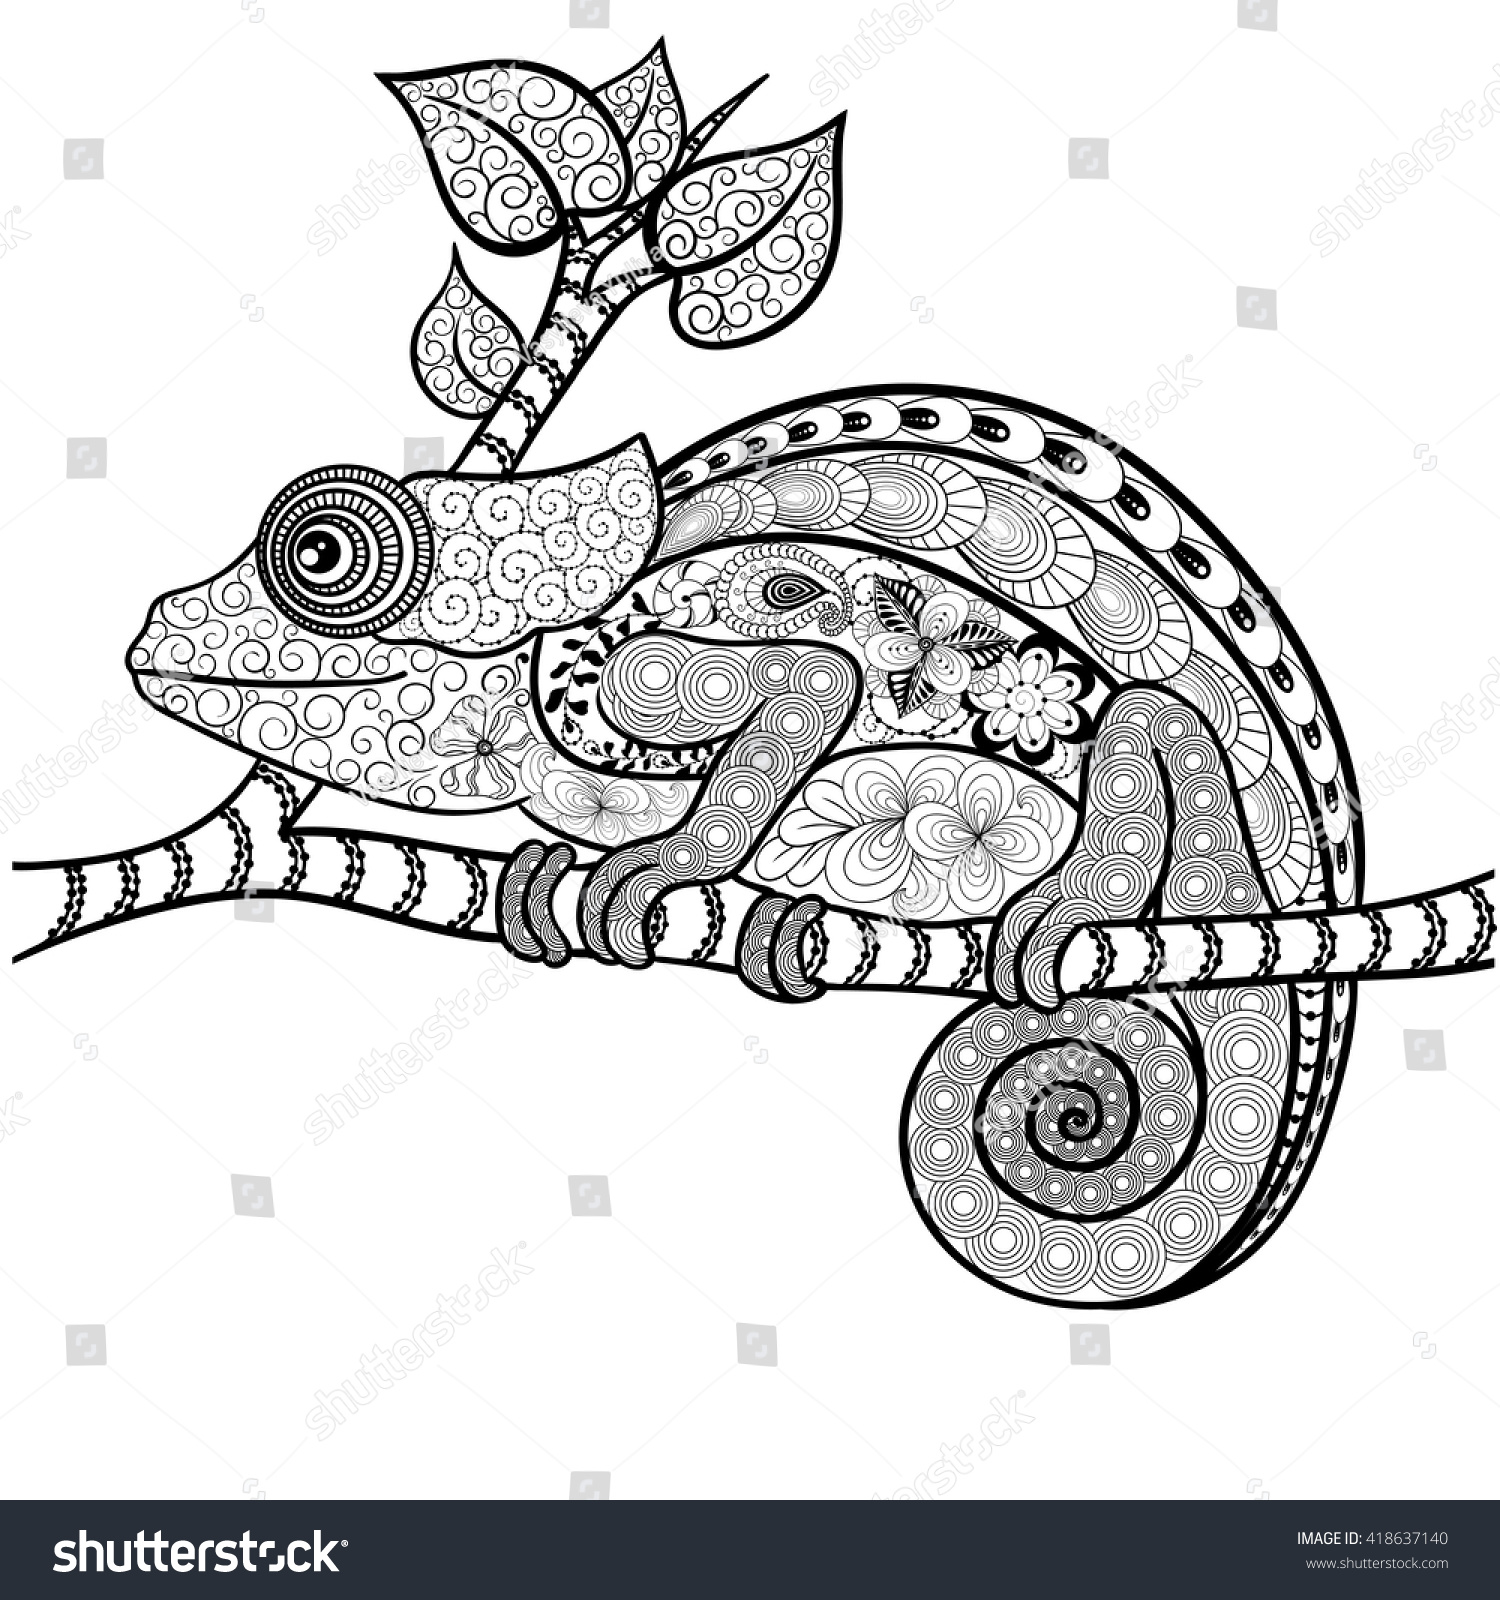 Illustration Chameleon Was Created In Doodling Style Black And White Colors Painted